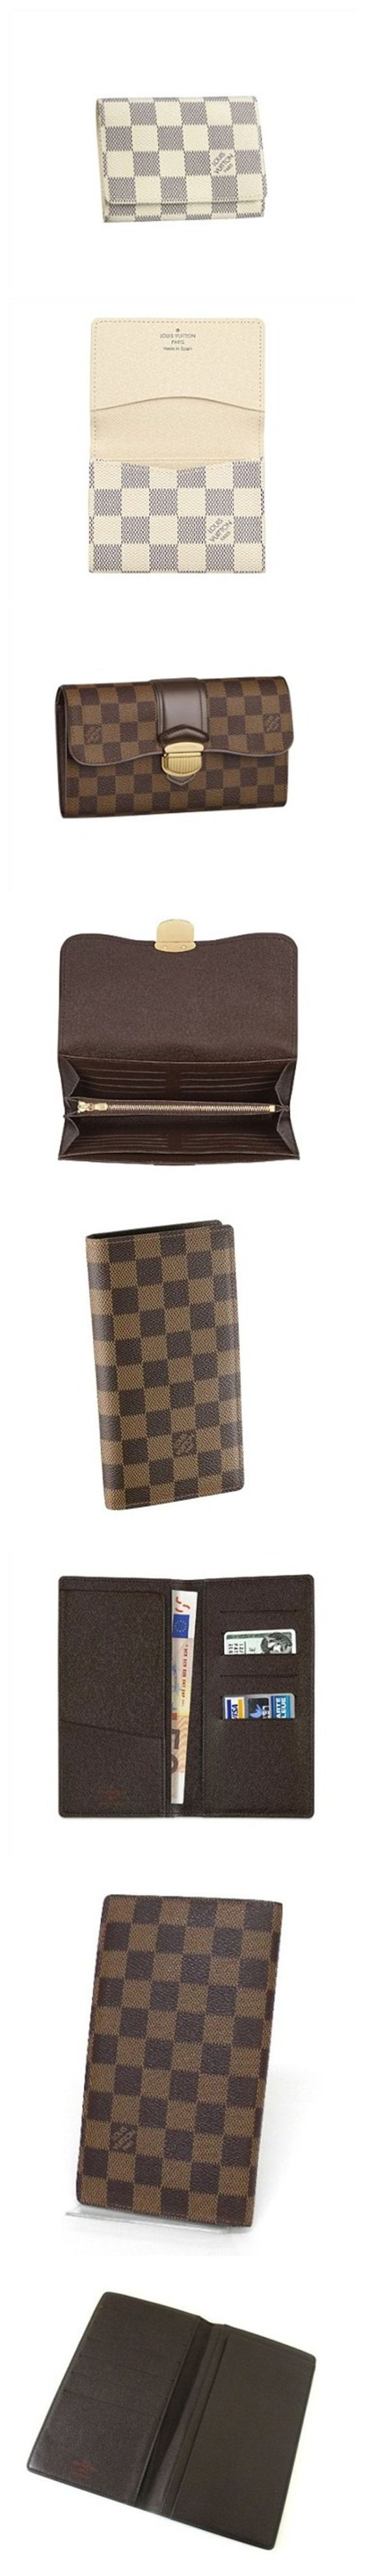 Reliable designer bags outlet for replica gucci wallet